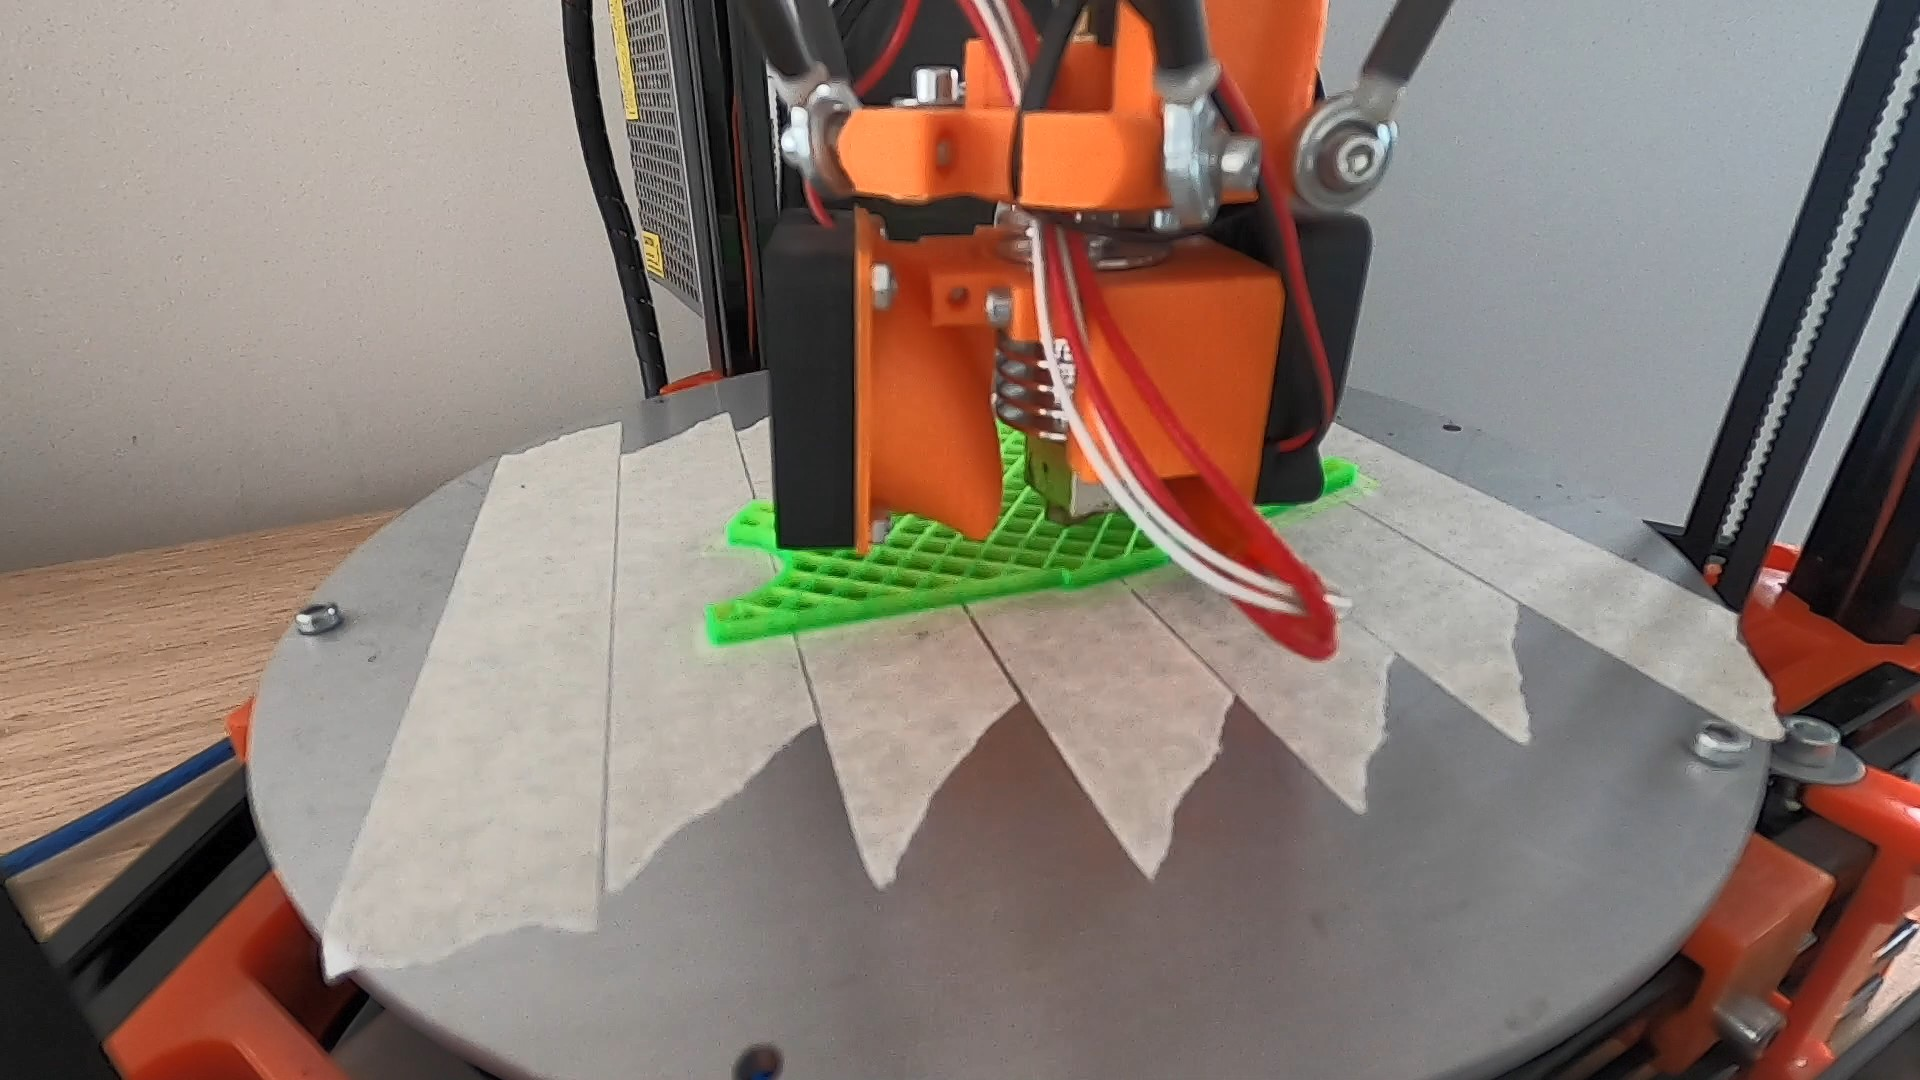 3D Printing Components